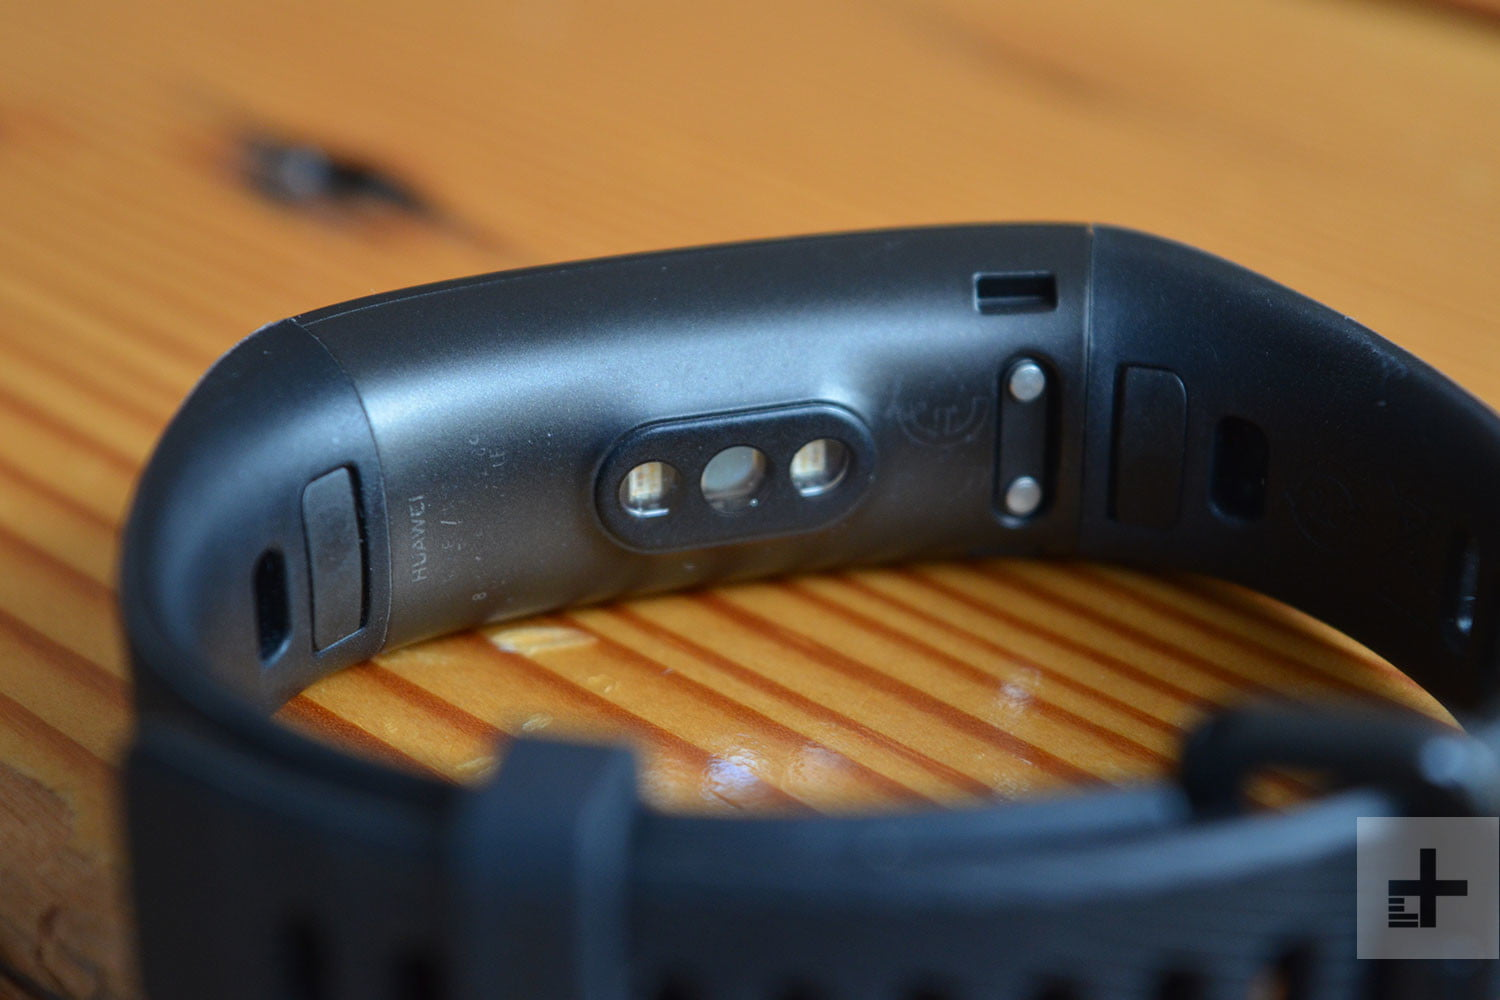 revision huawei band 3 pro review 15